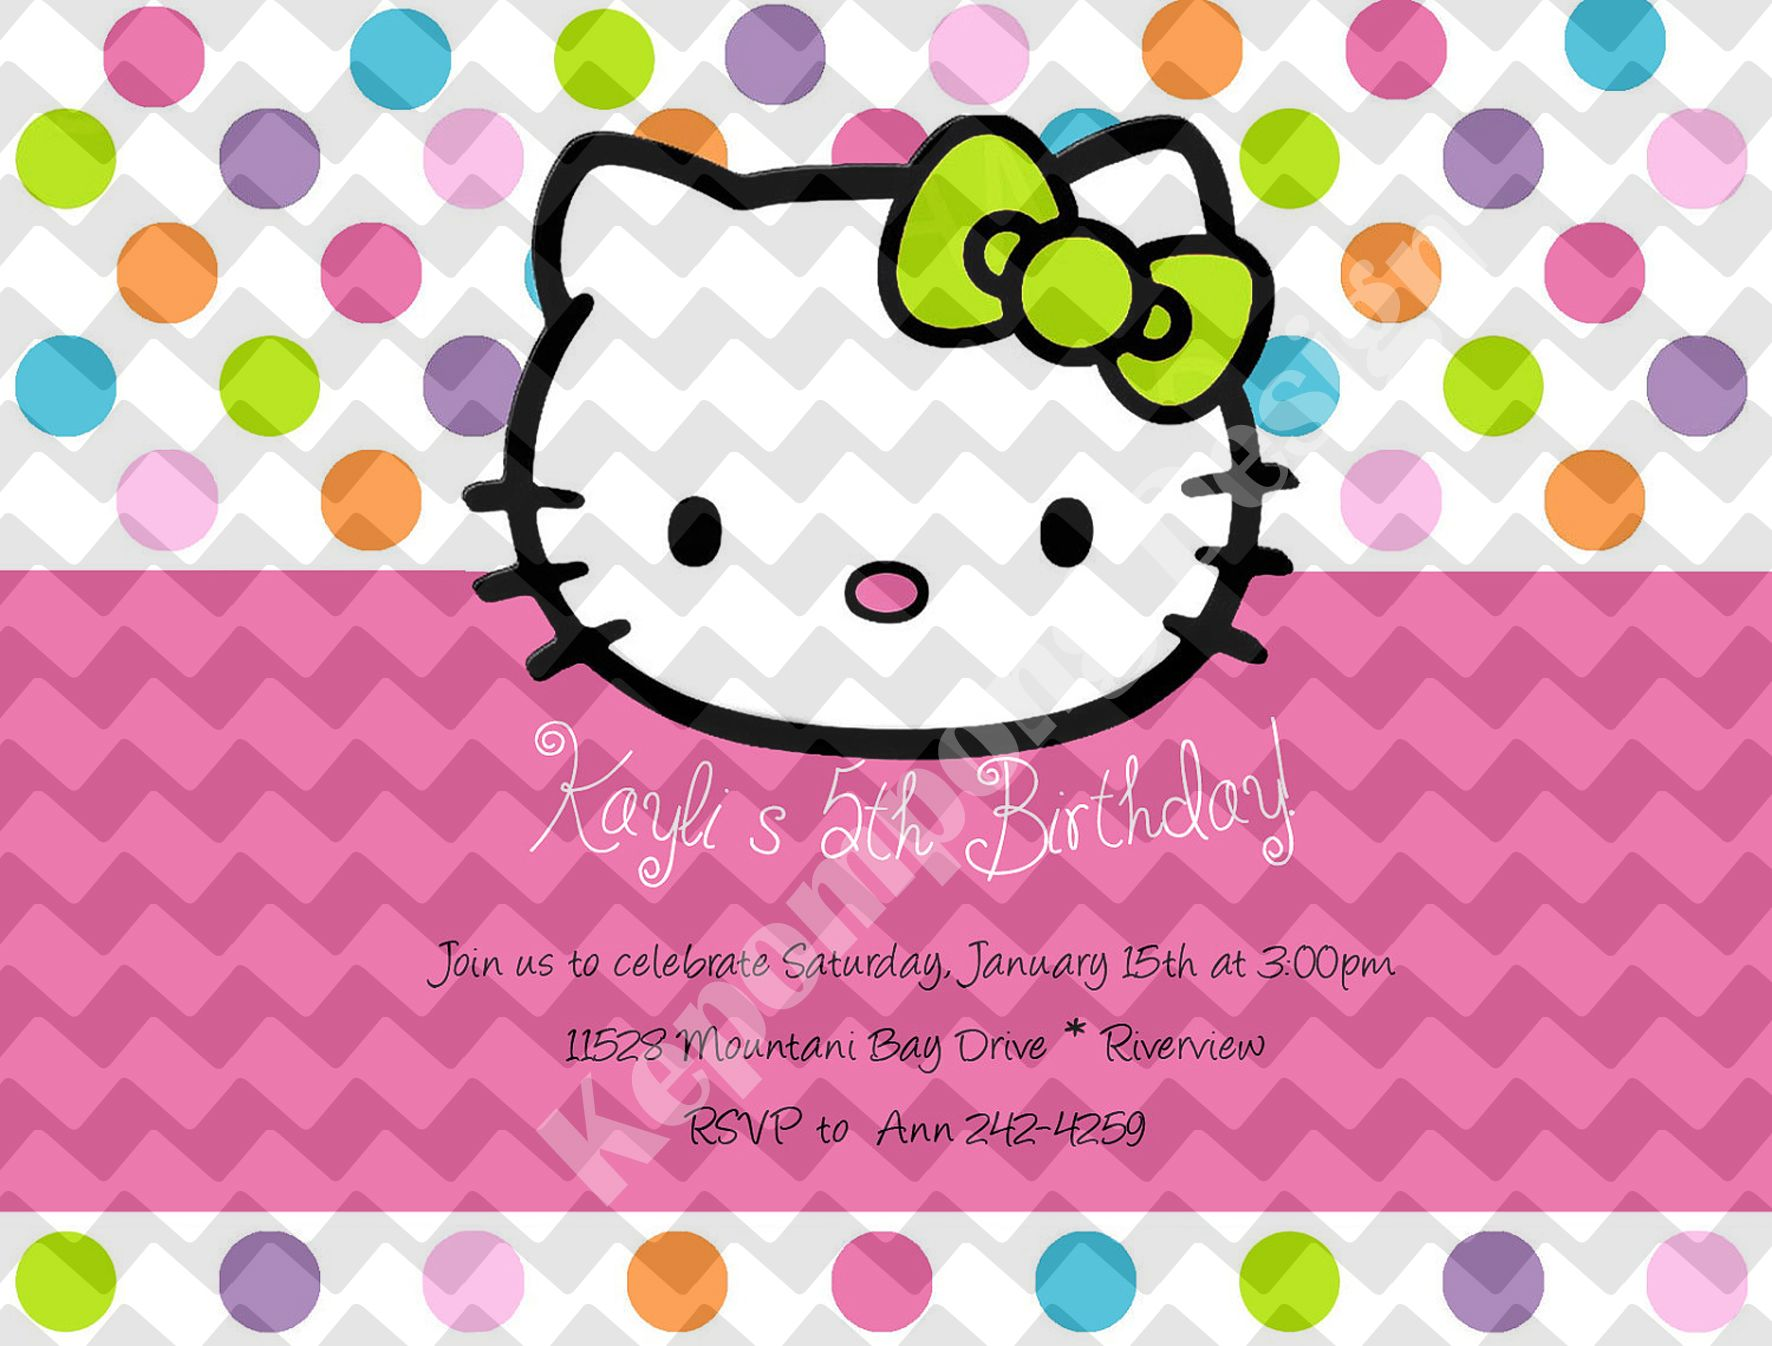 Hello Kitty 2 Birthday Invitation Card Kartu Undangan Ulang Tahun